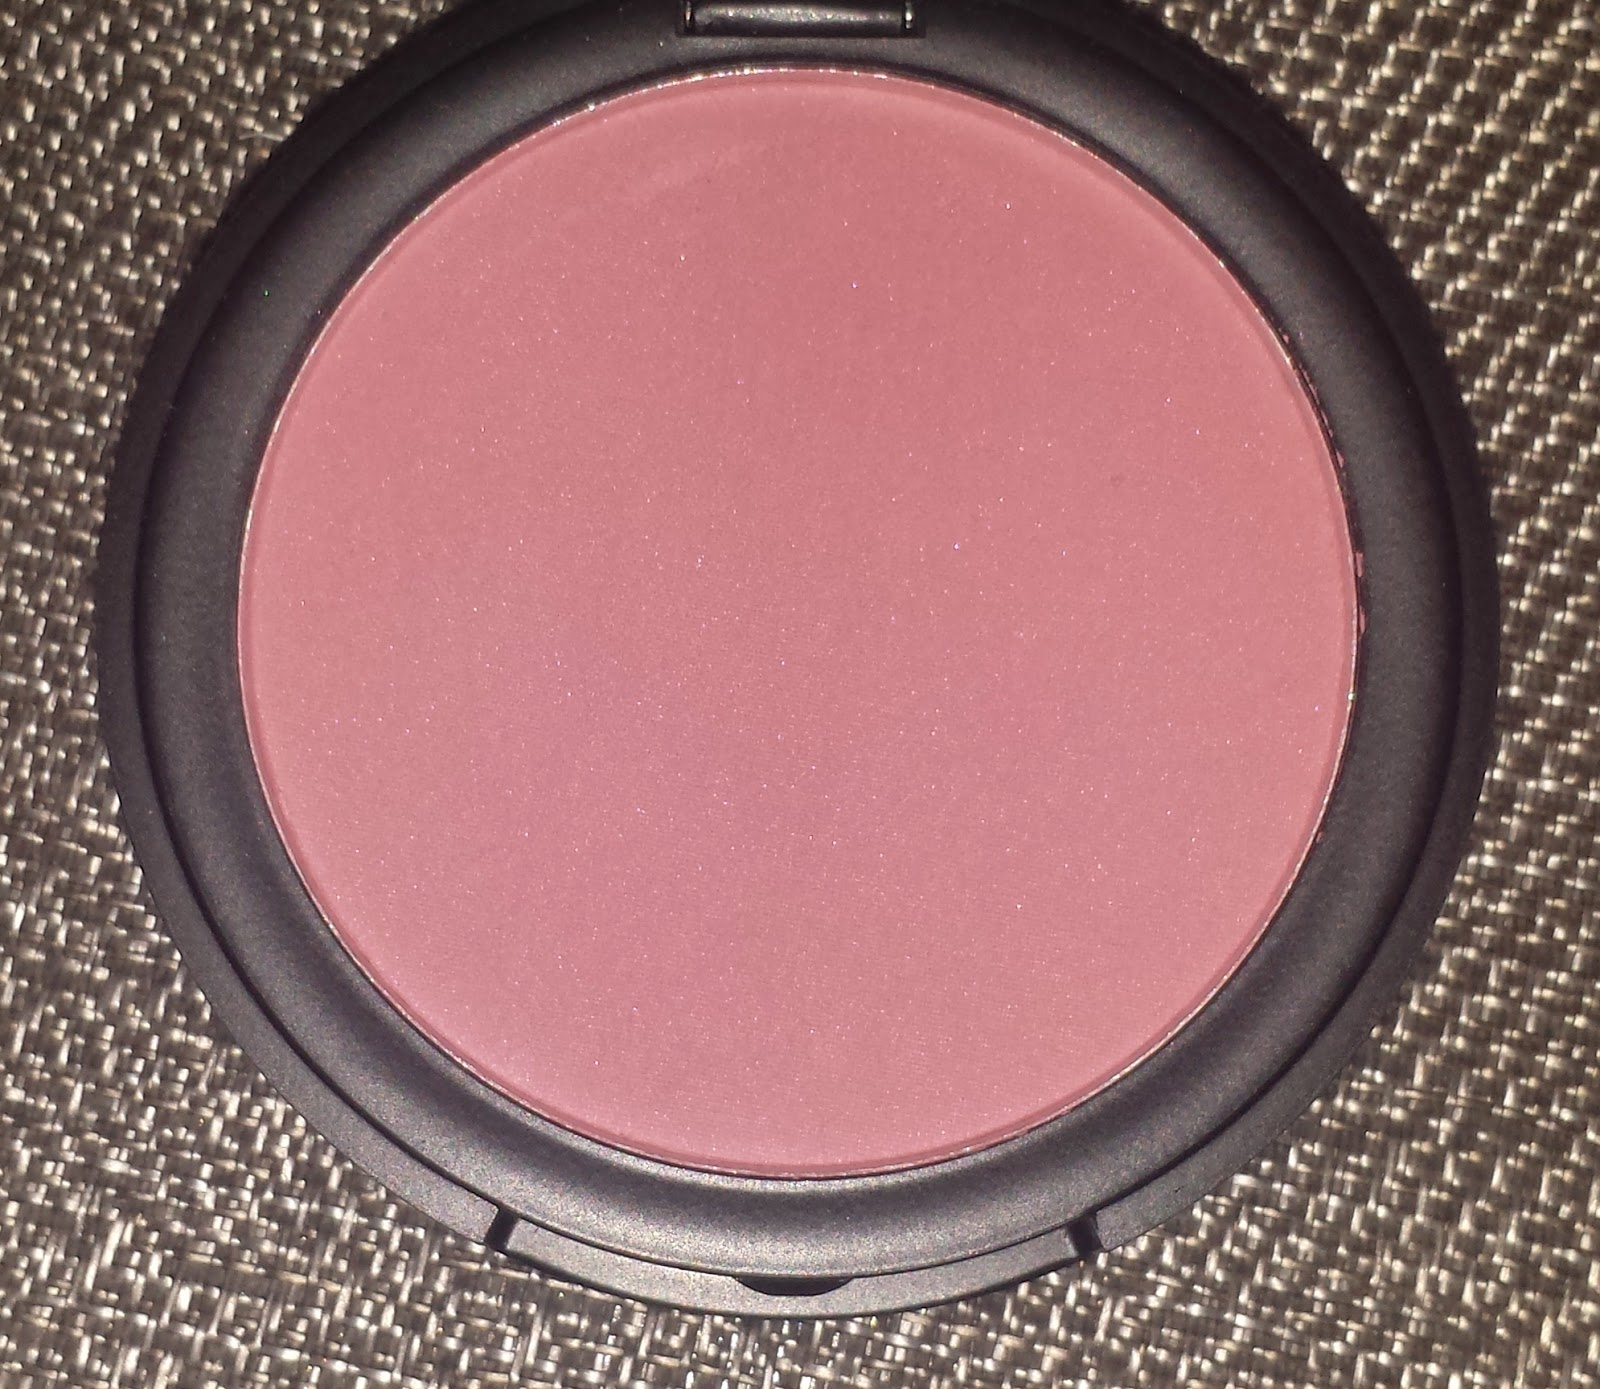 Review: City Color Cosmetics Be Matte Blushes